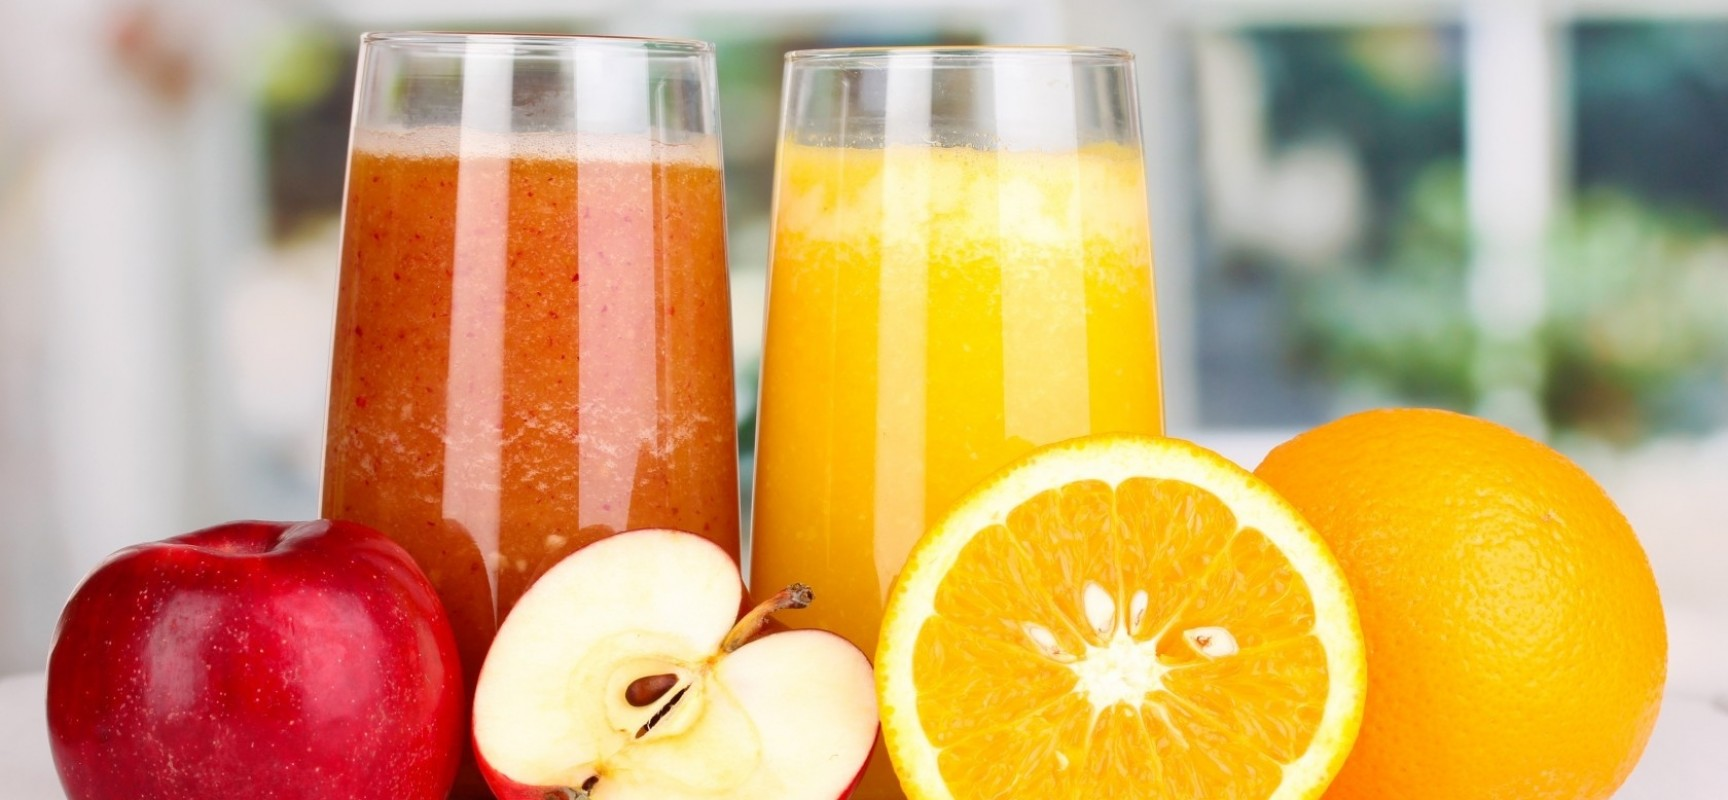 Why Are Juices Turning Out To Be Unhealthy